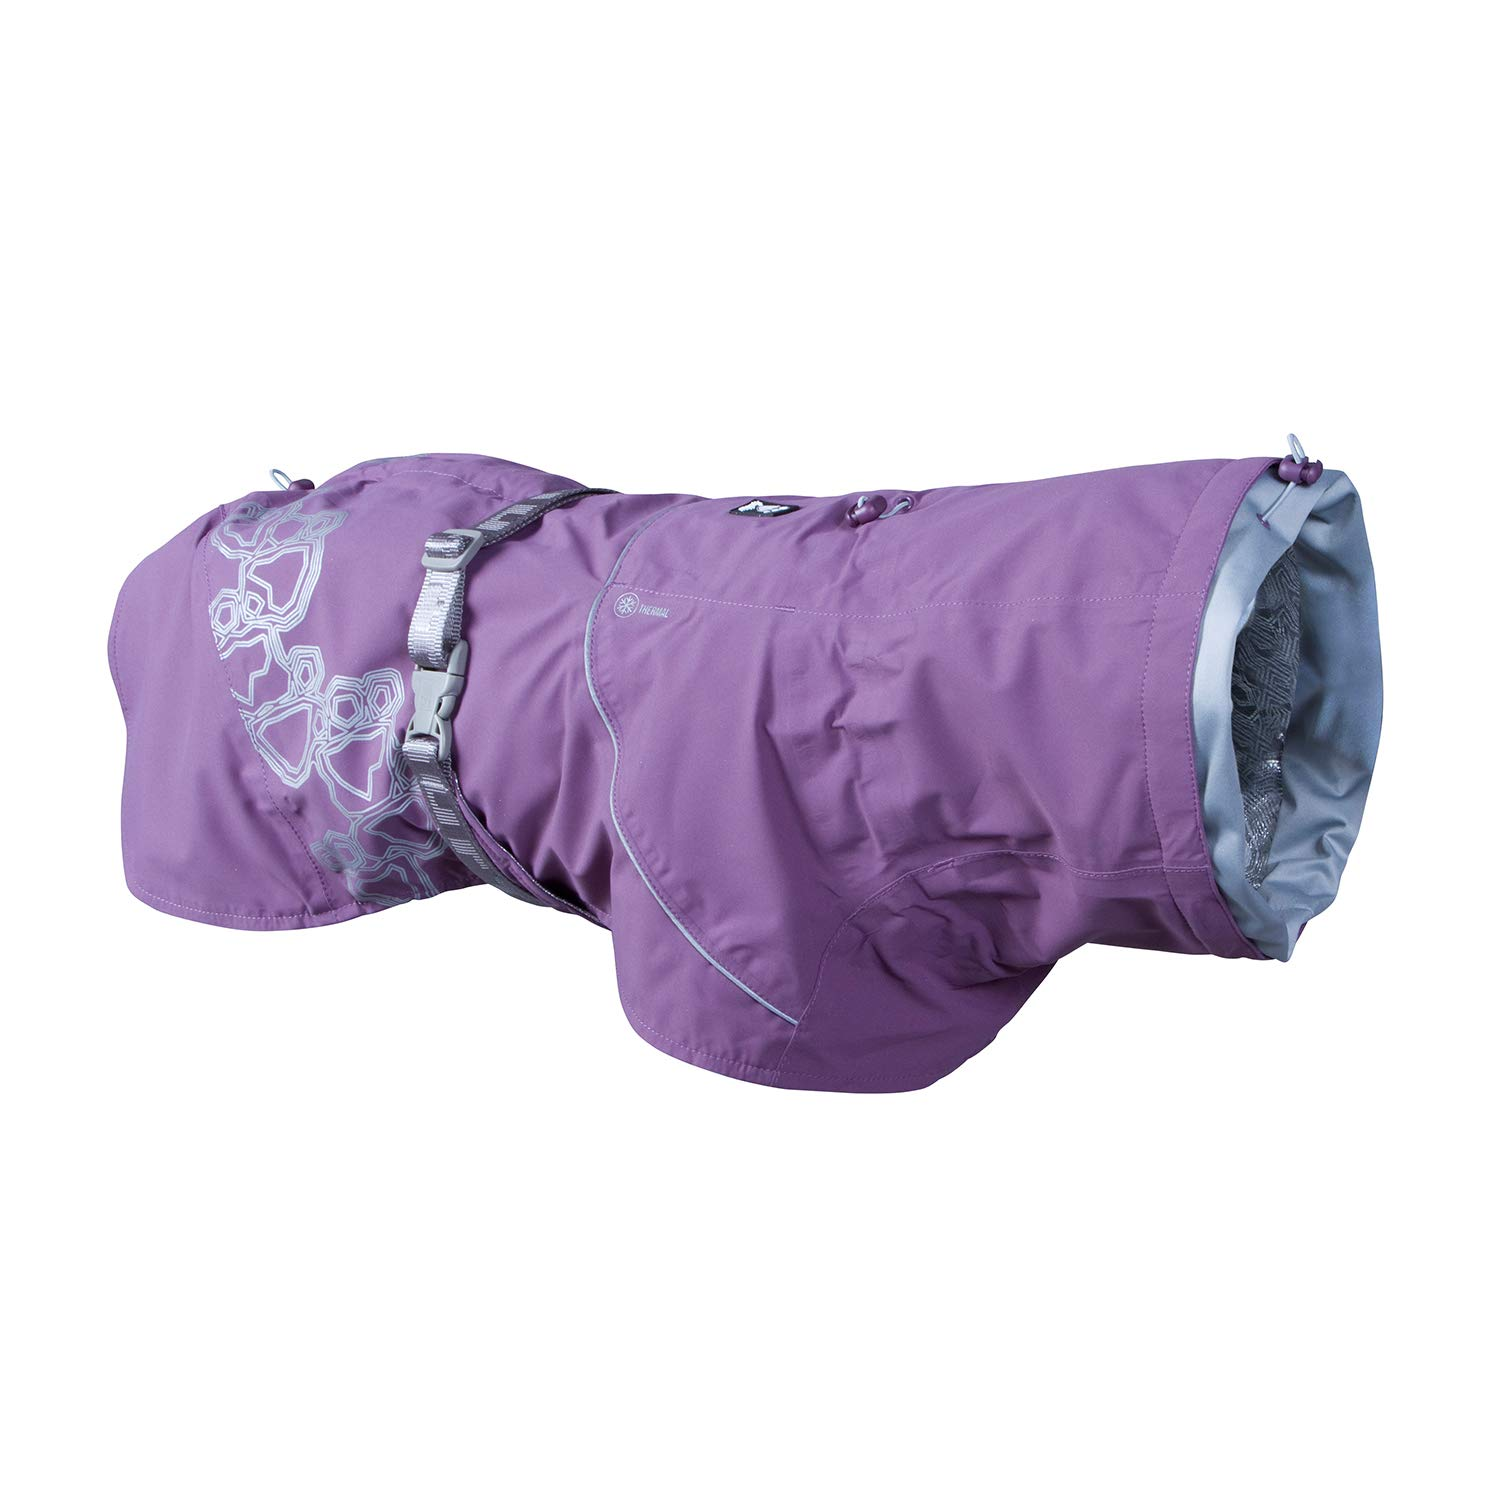 Hurtta Drizzle Coat, Dog Raincoat, Currant, 24 in by Hurtta